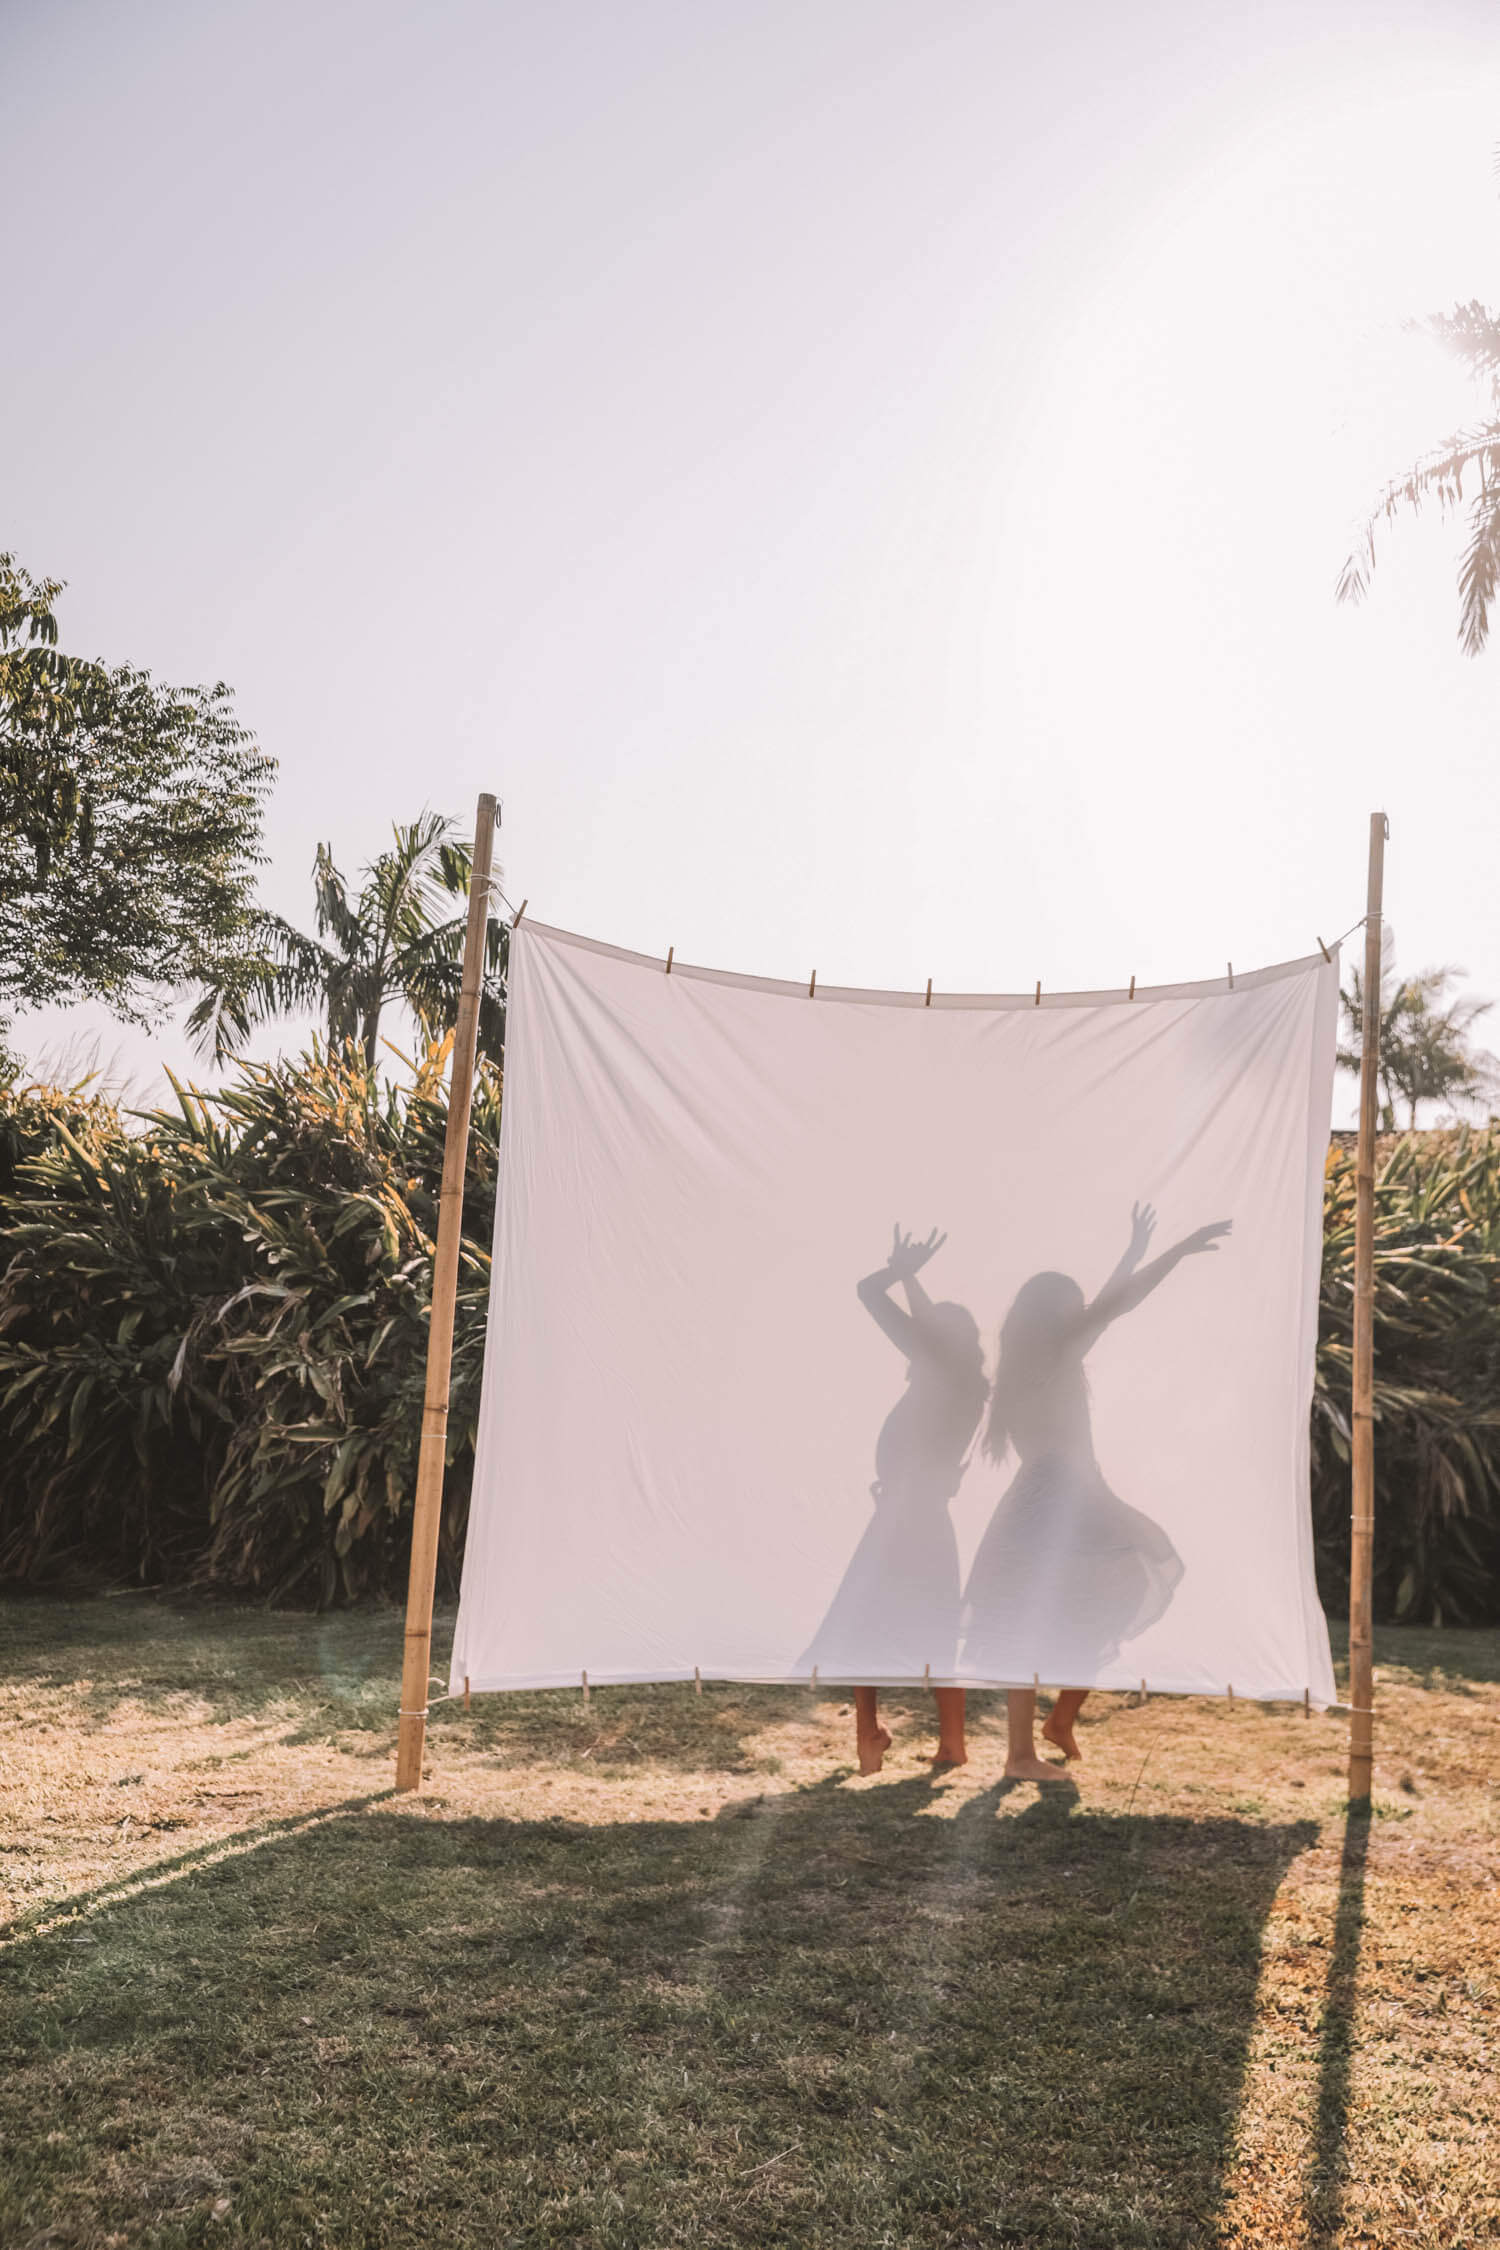 Backyard Movie Night Setup by Spell Designs - a how-to guide